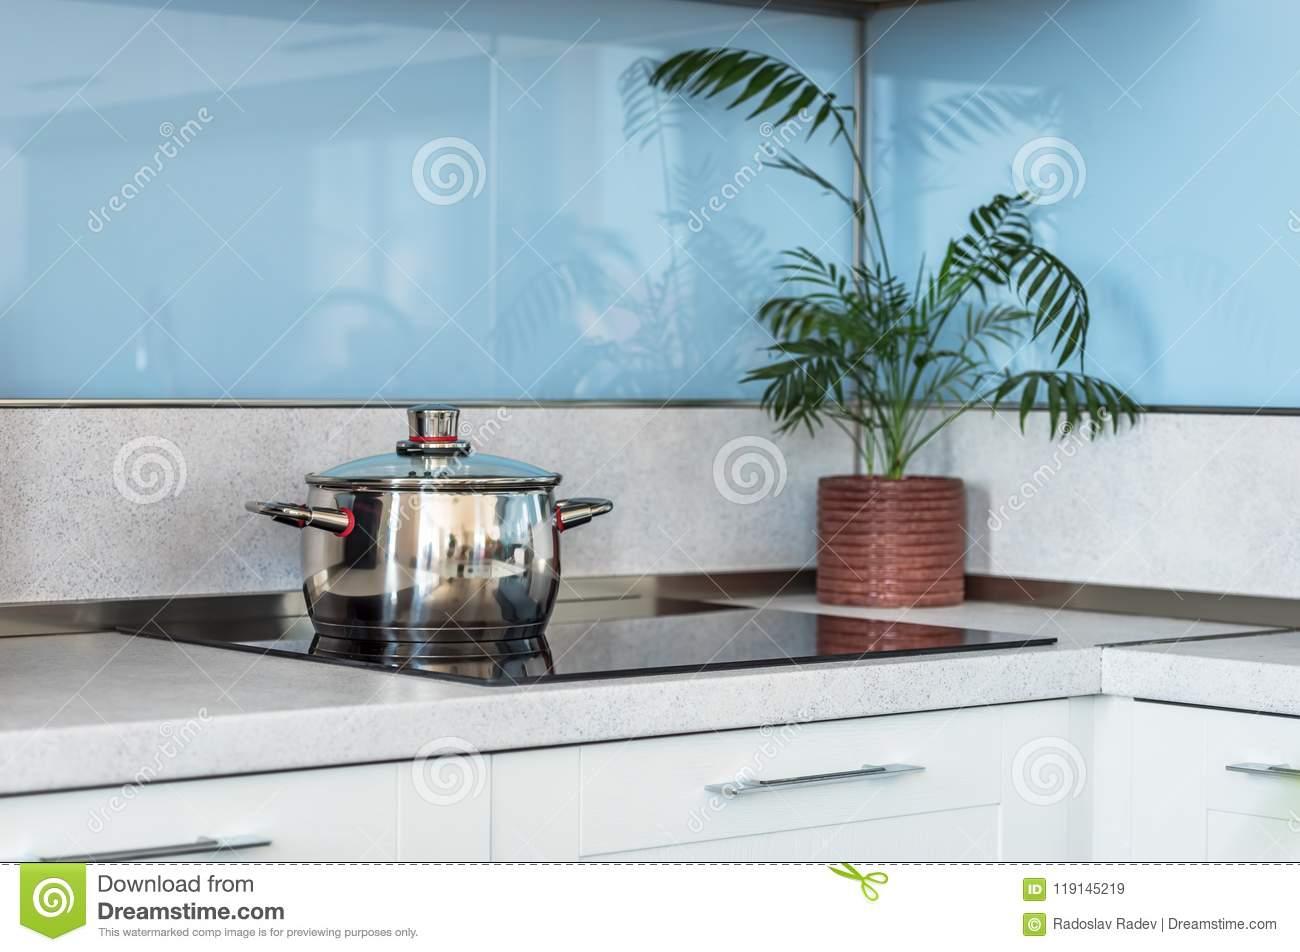 Stainless Steel Pot On Induction Electric. Stock Image - Image of ...